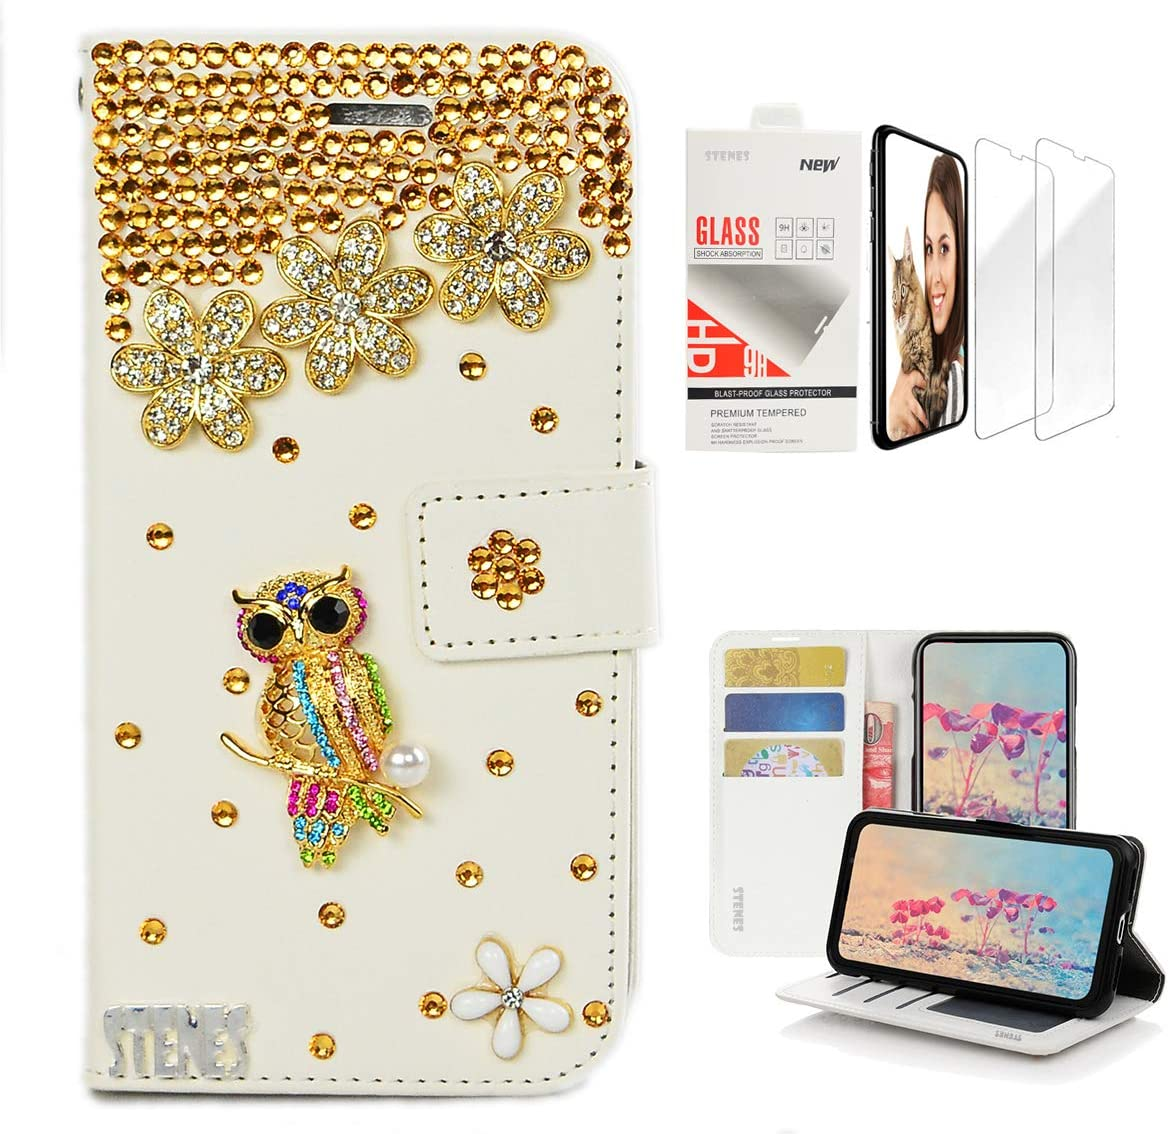 STENES Bling Wallet Case Compatible with iPod Touch 6th/5th Generation - 3D Handmade Pretty Night Owl Floral Design Leather Case with Wrist Strap & Screen Protector [2 Pack] - Gold